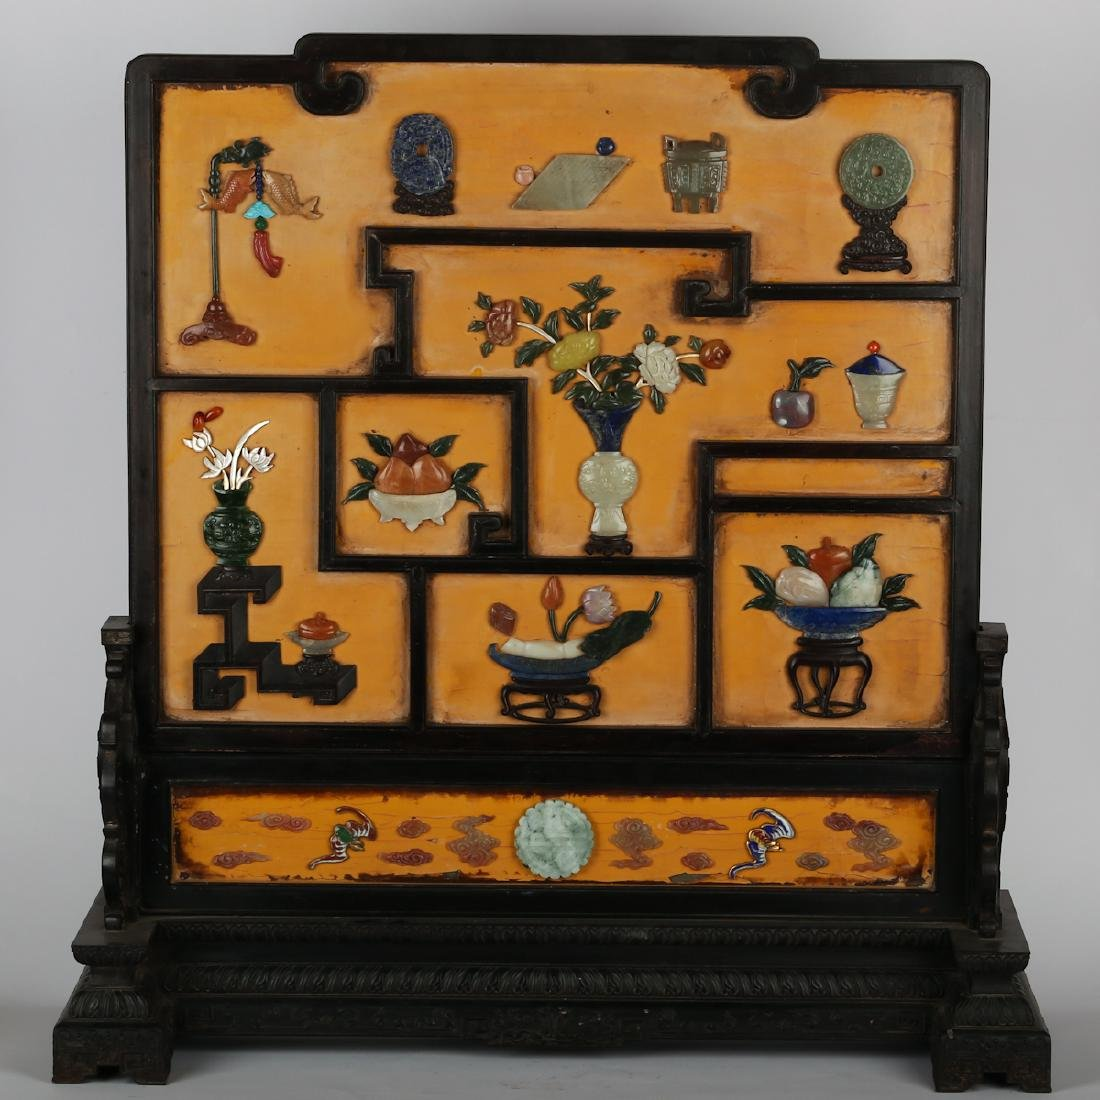 CHINESE ROSEWOOD TABLE SCREEN INLAID JADE AND STONES